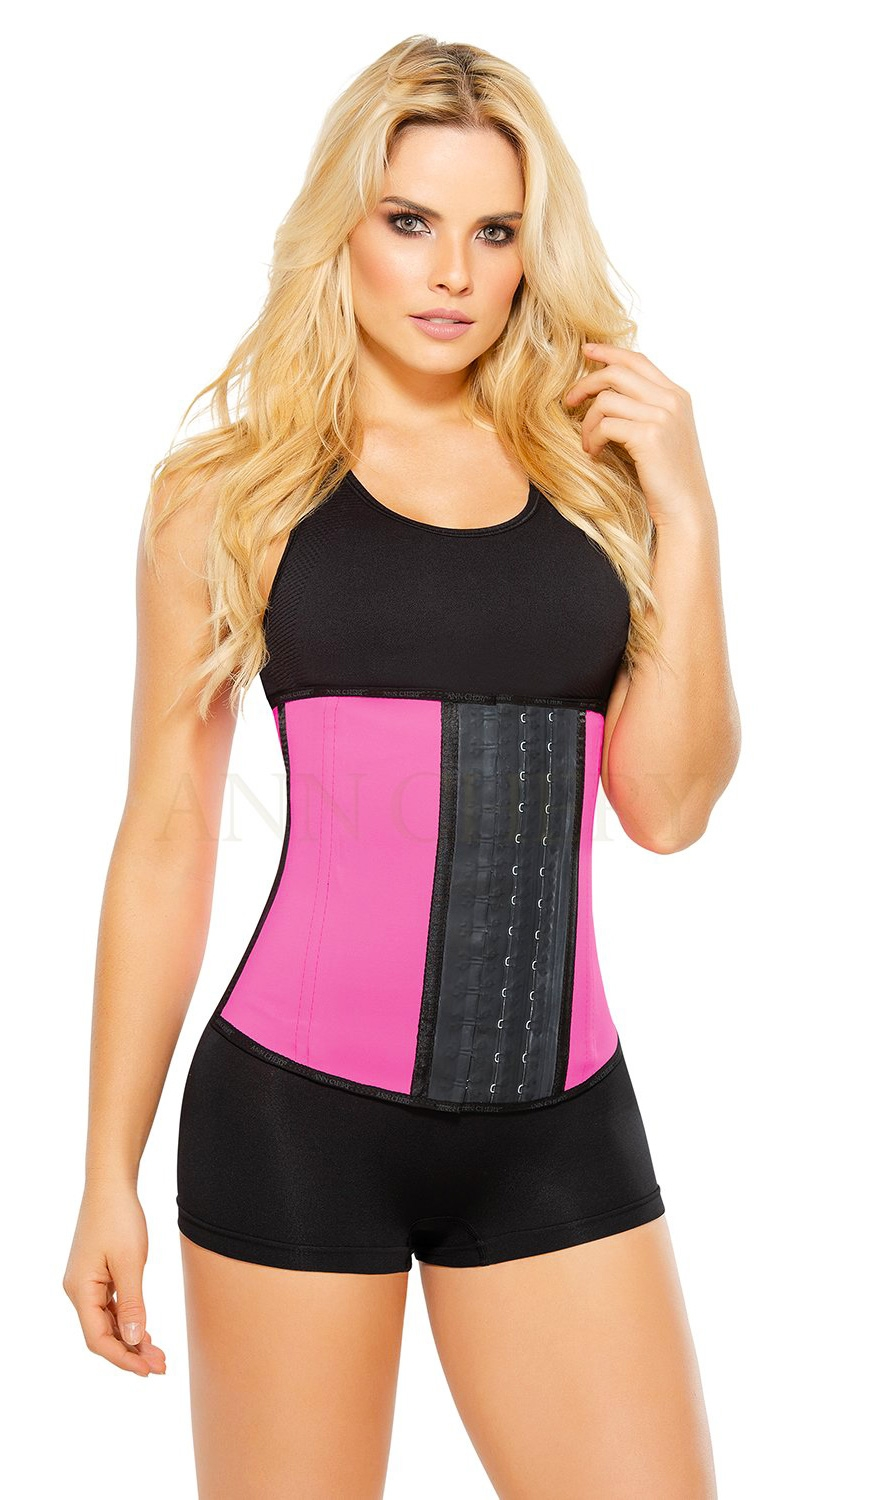 cfee02ba015 Ann Chery AC2023 - Workout Latex Waist Trainer Corset - 3 Hooks